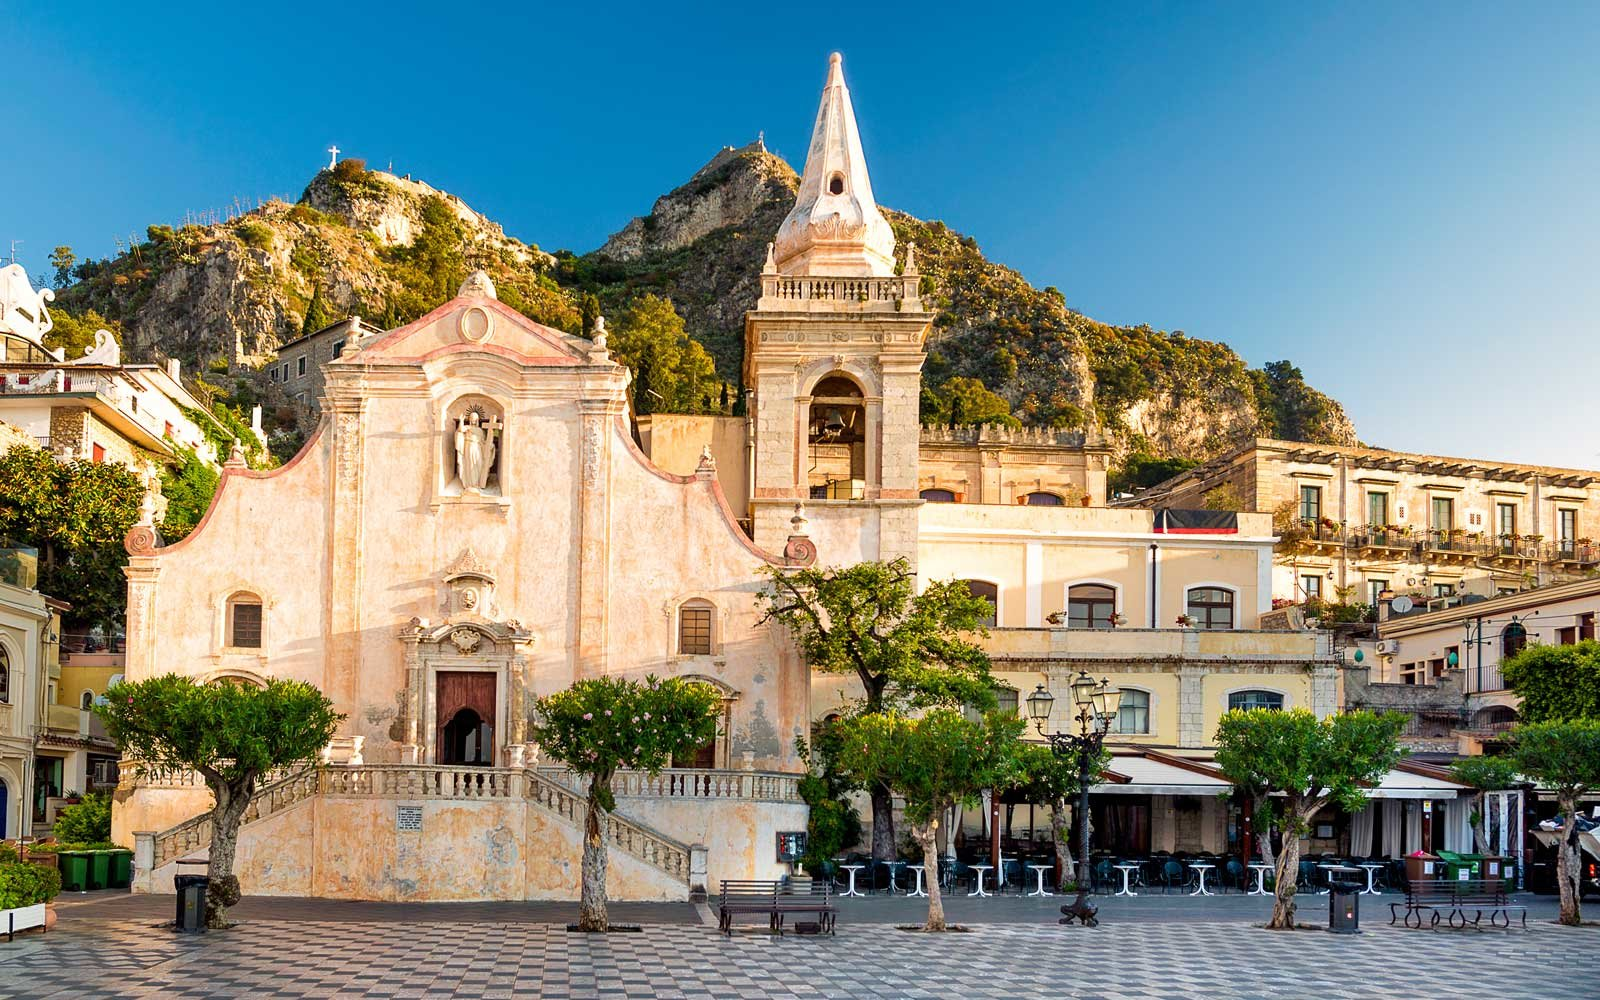 Church of San Giuseppe in Taormina, Sicily